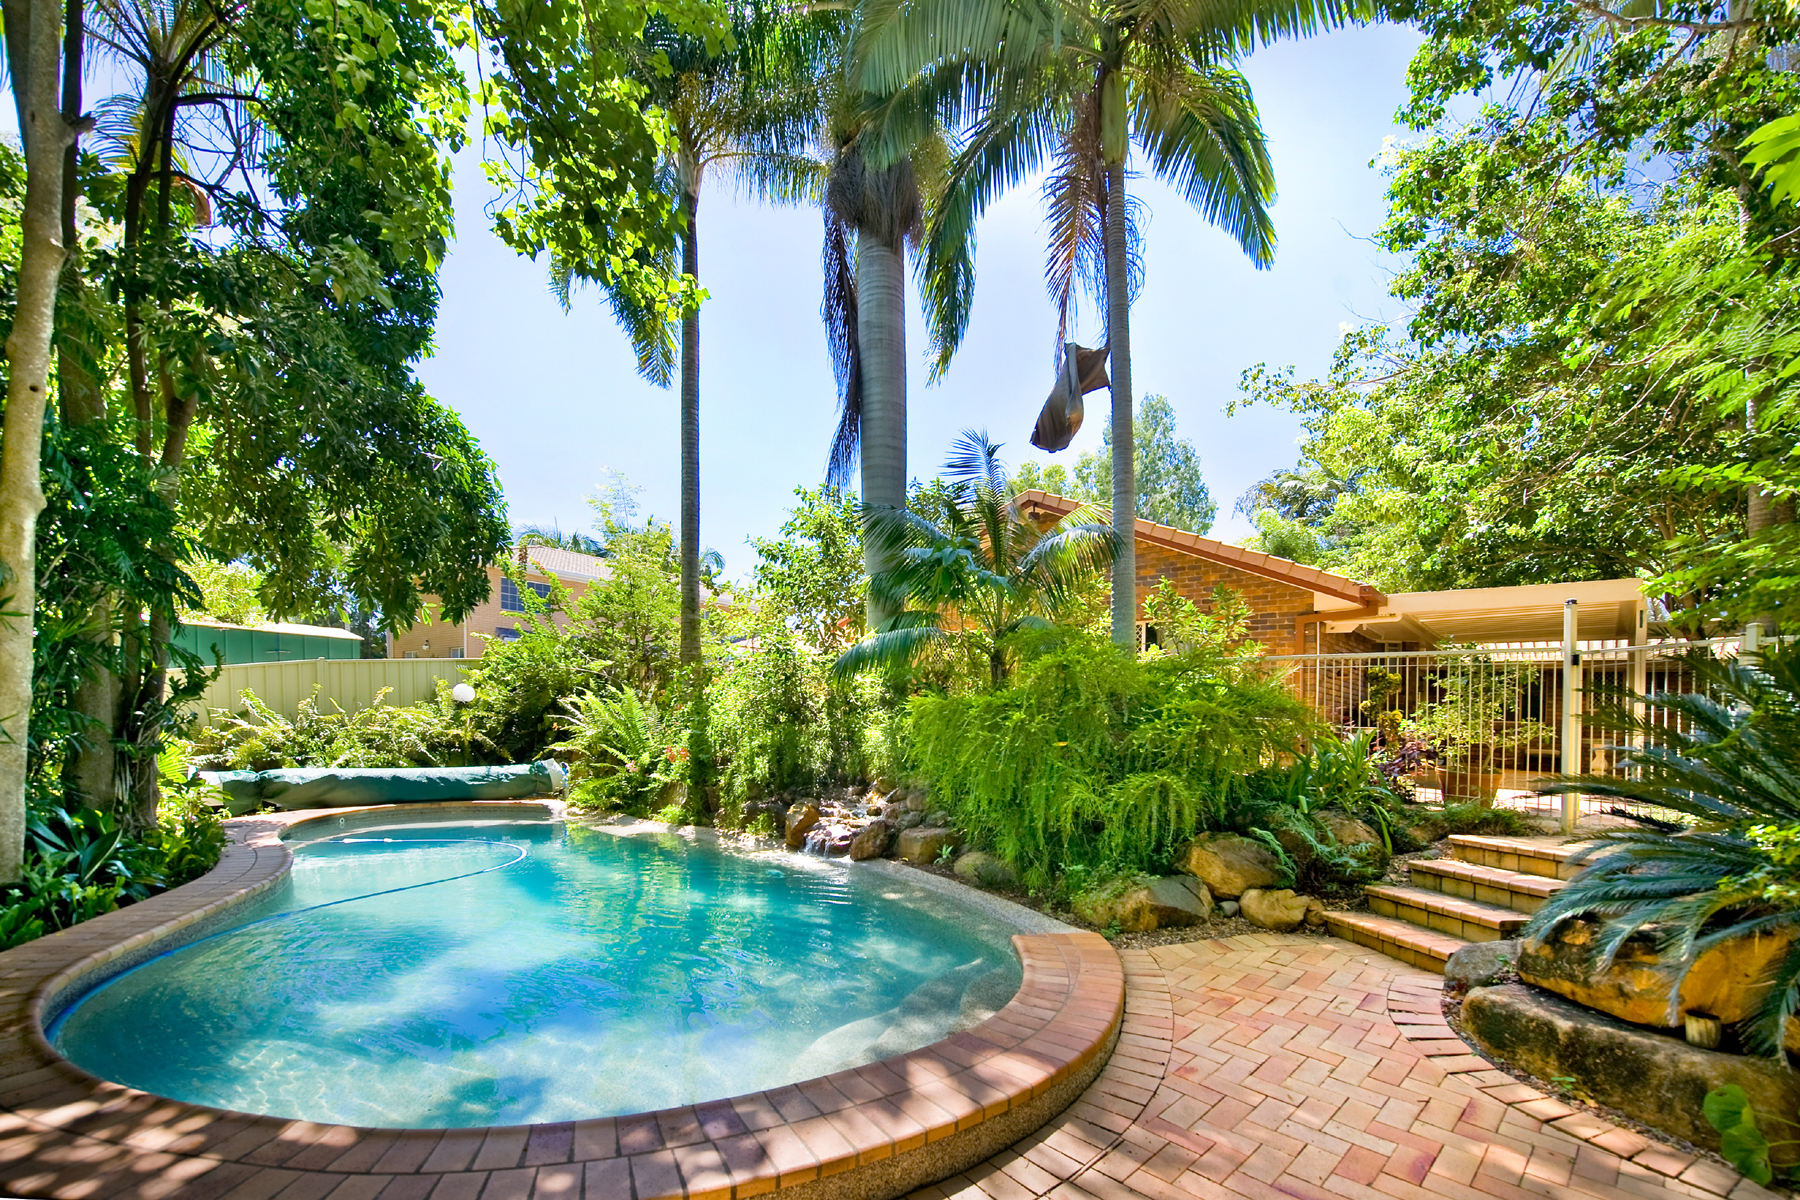 Tropical trees and hot springs pool landscapes 52318